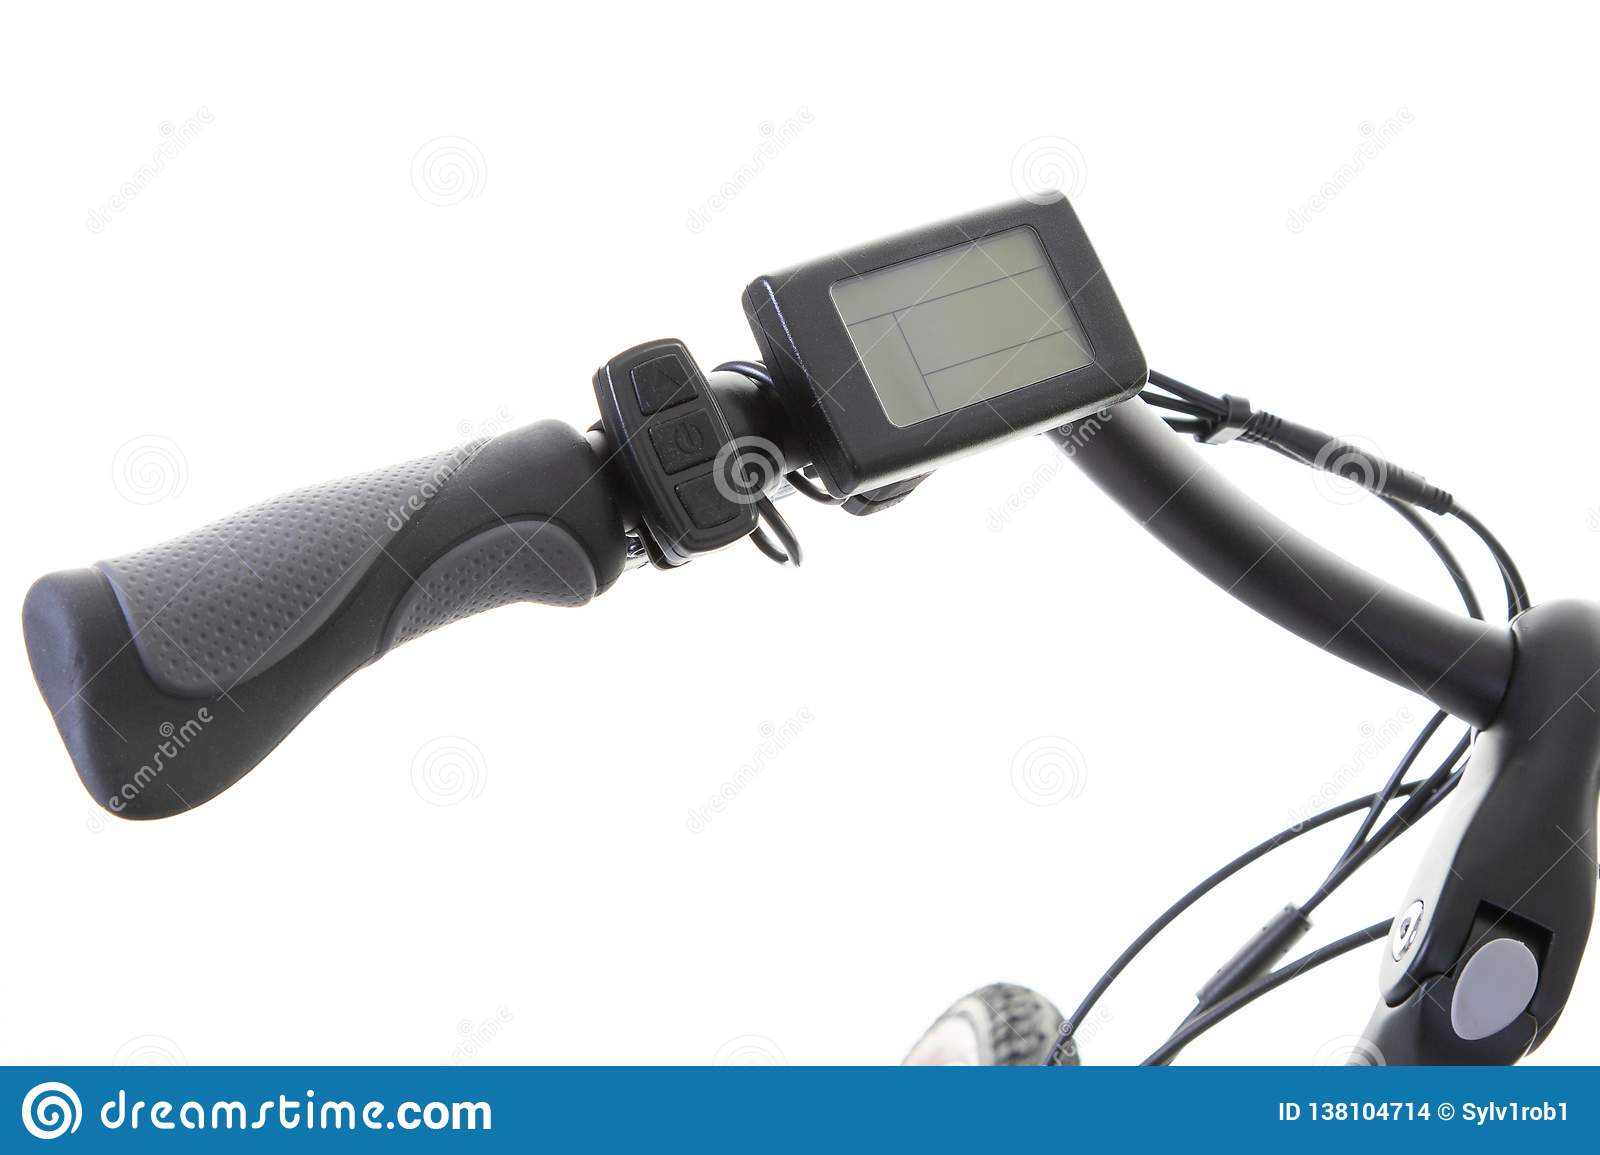 Handle and handlebar of an electric bike